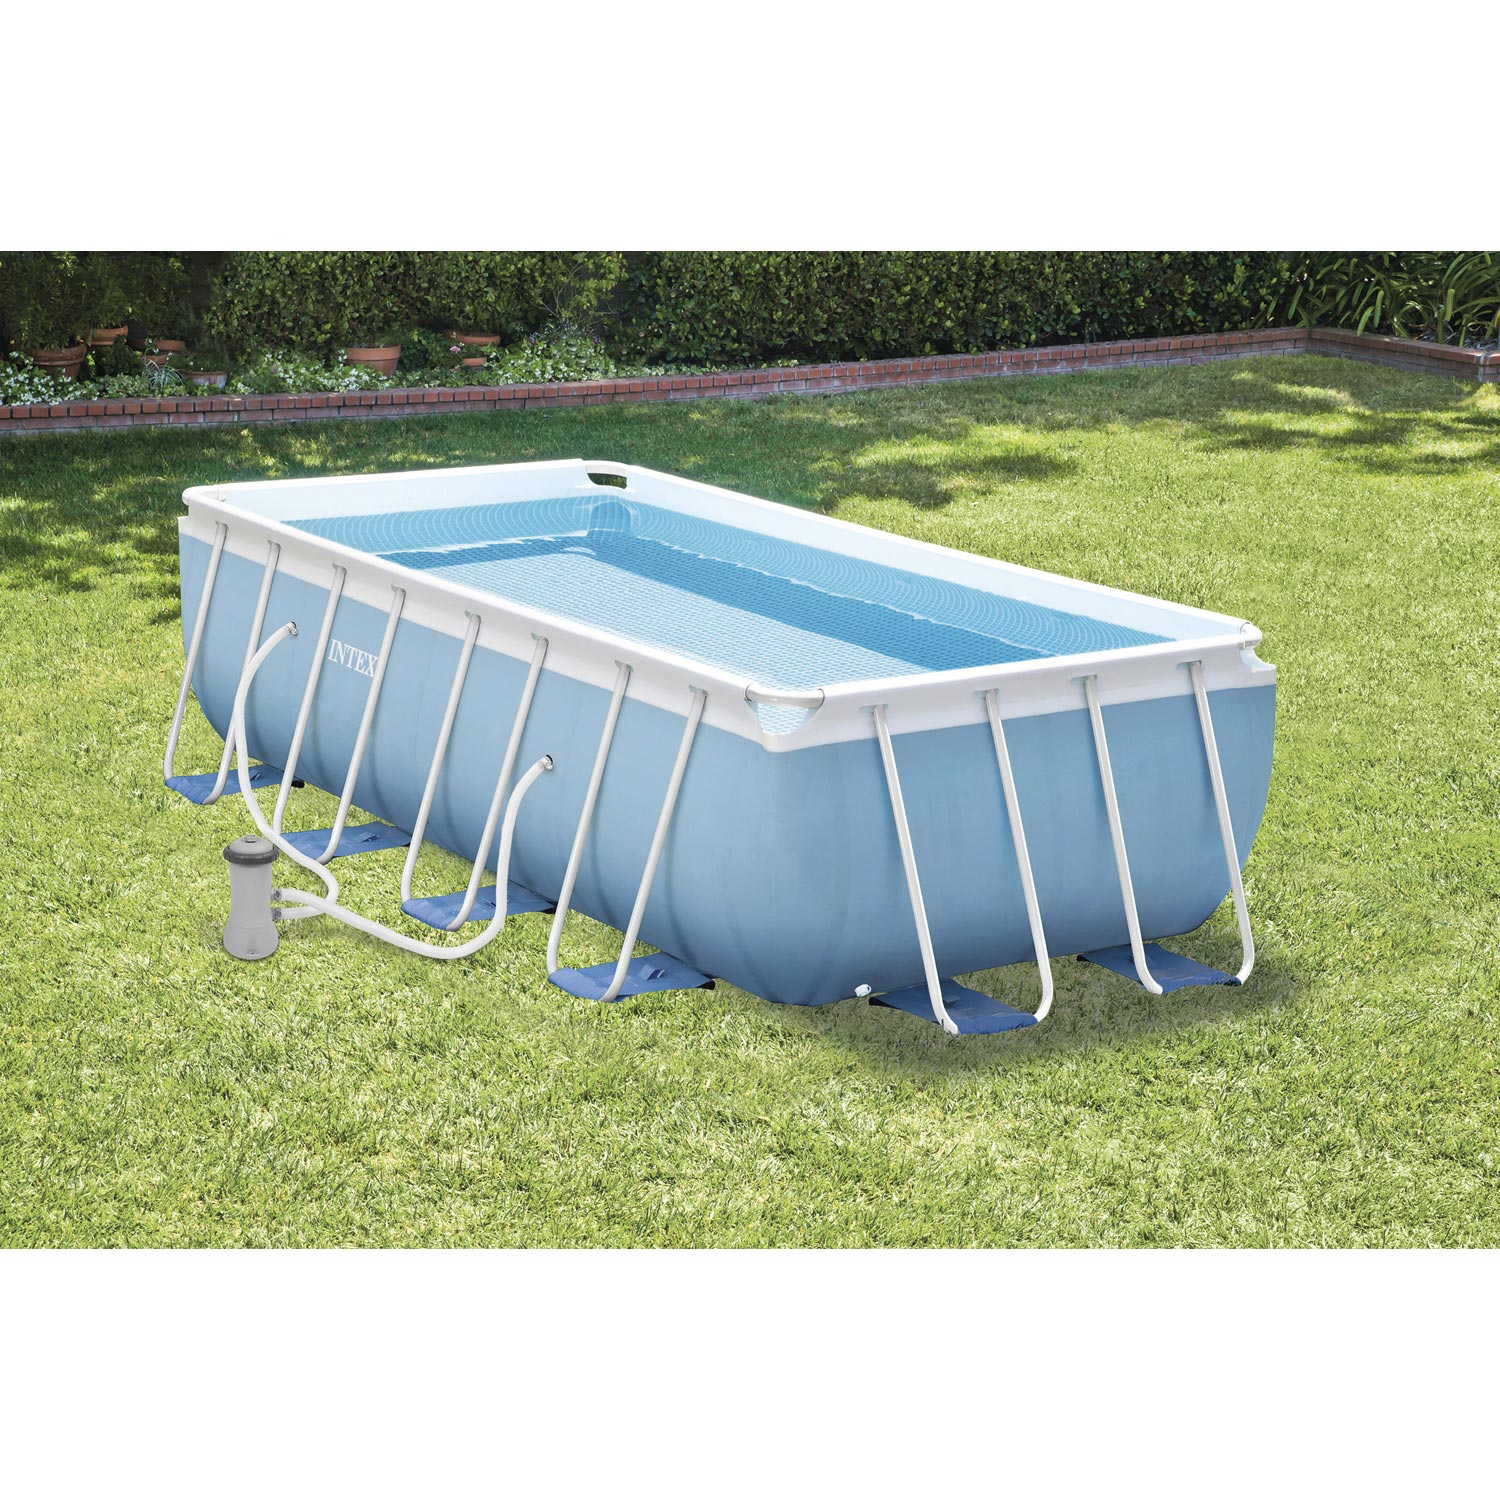 Piscine hors sol autoportante tubulaire prism frame intex for Le roy merlin piscine